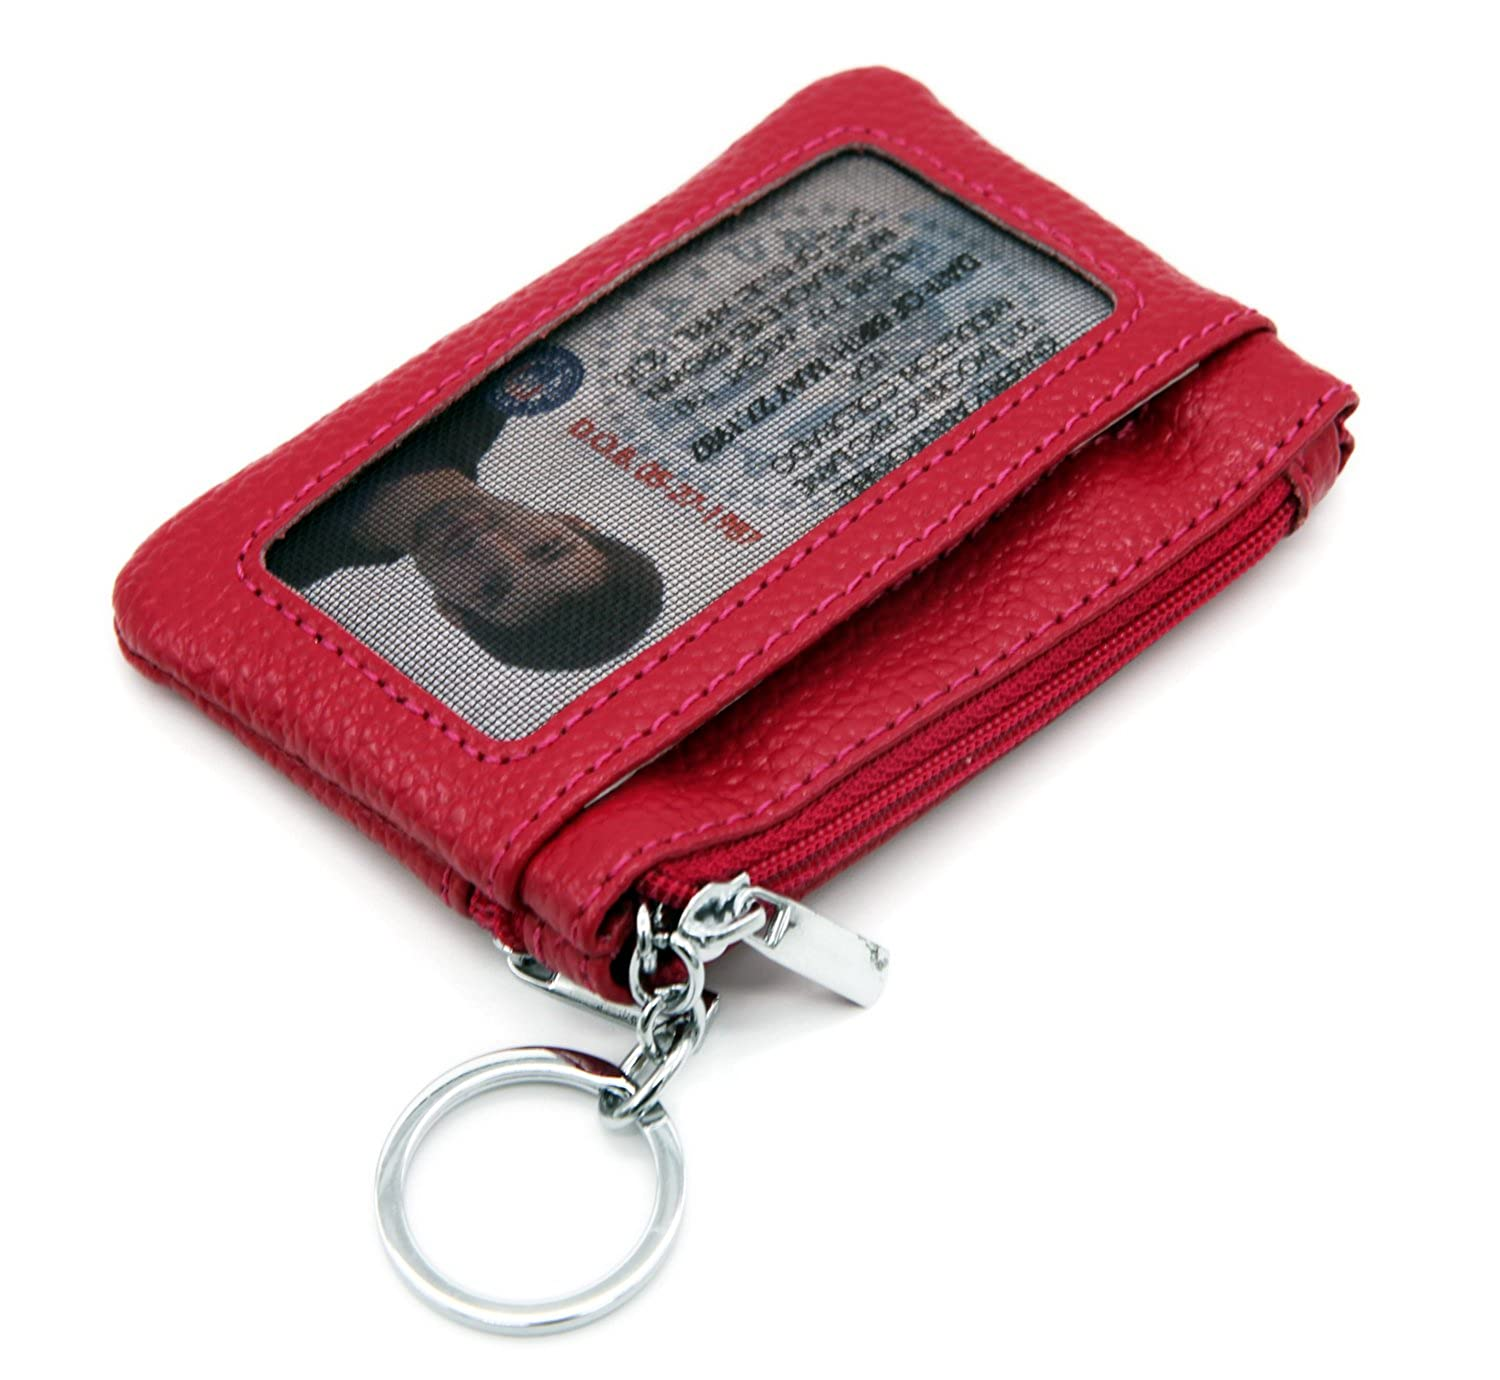 DEEZONE Womens Genuine Leather Coin Purse Pouch Change Wallet with ID Window /& Key Ring 10473983